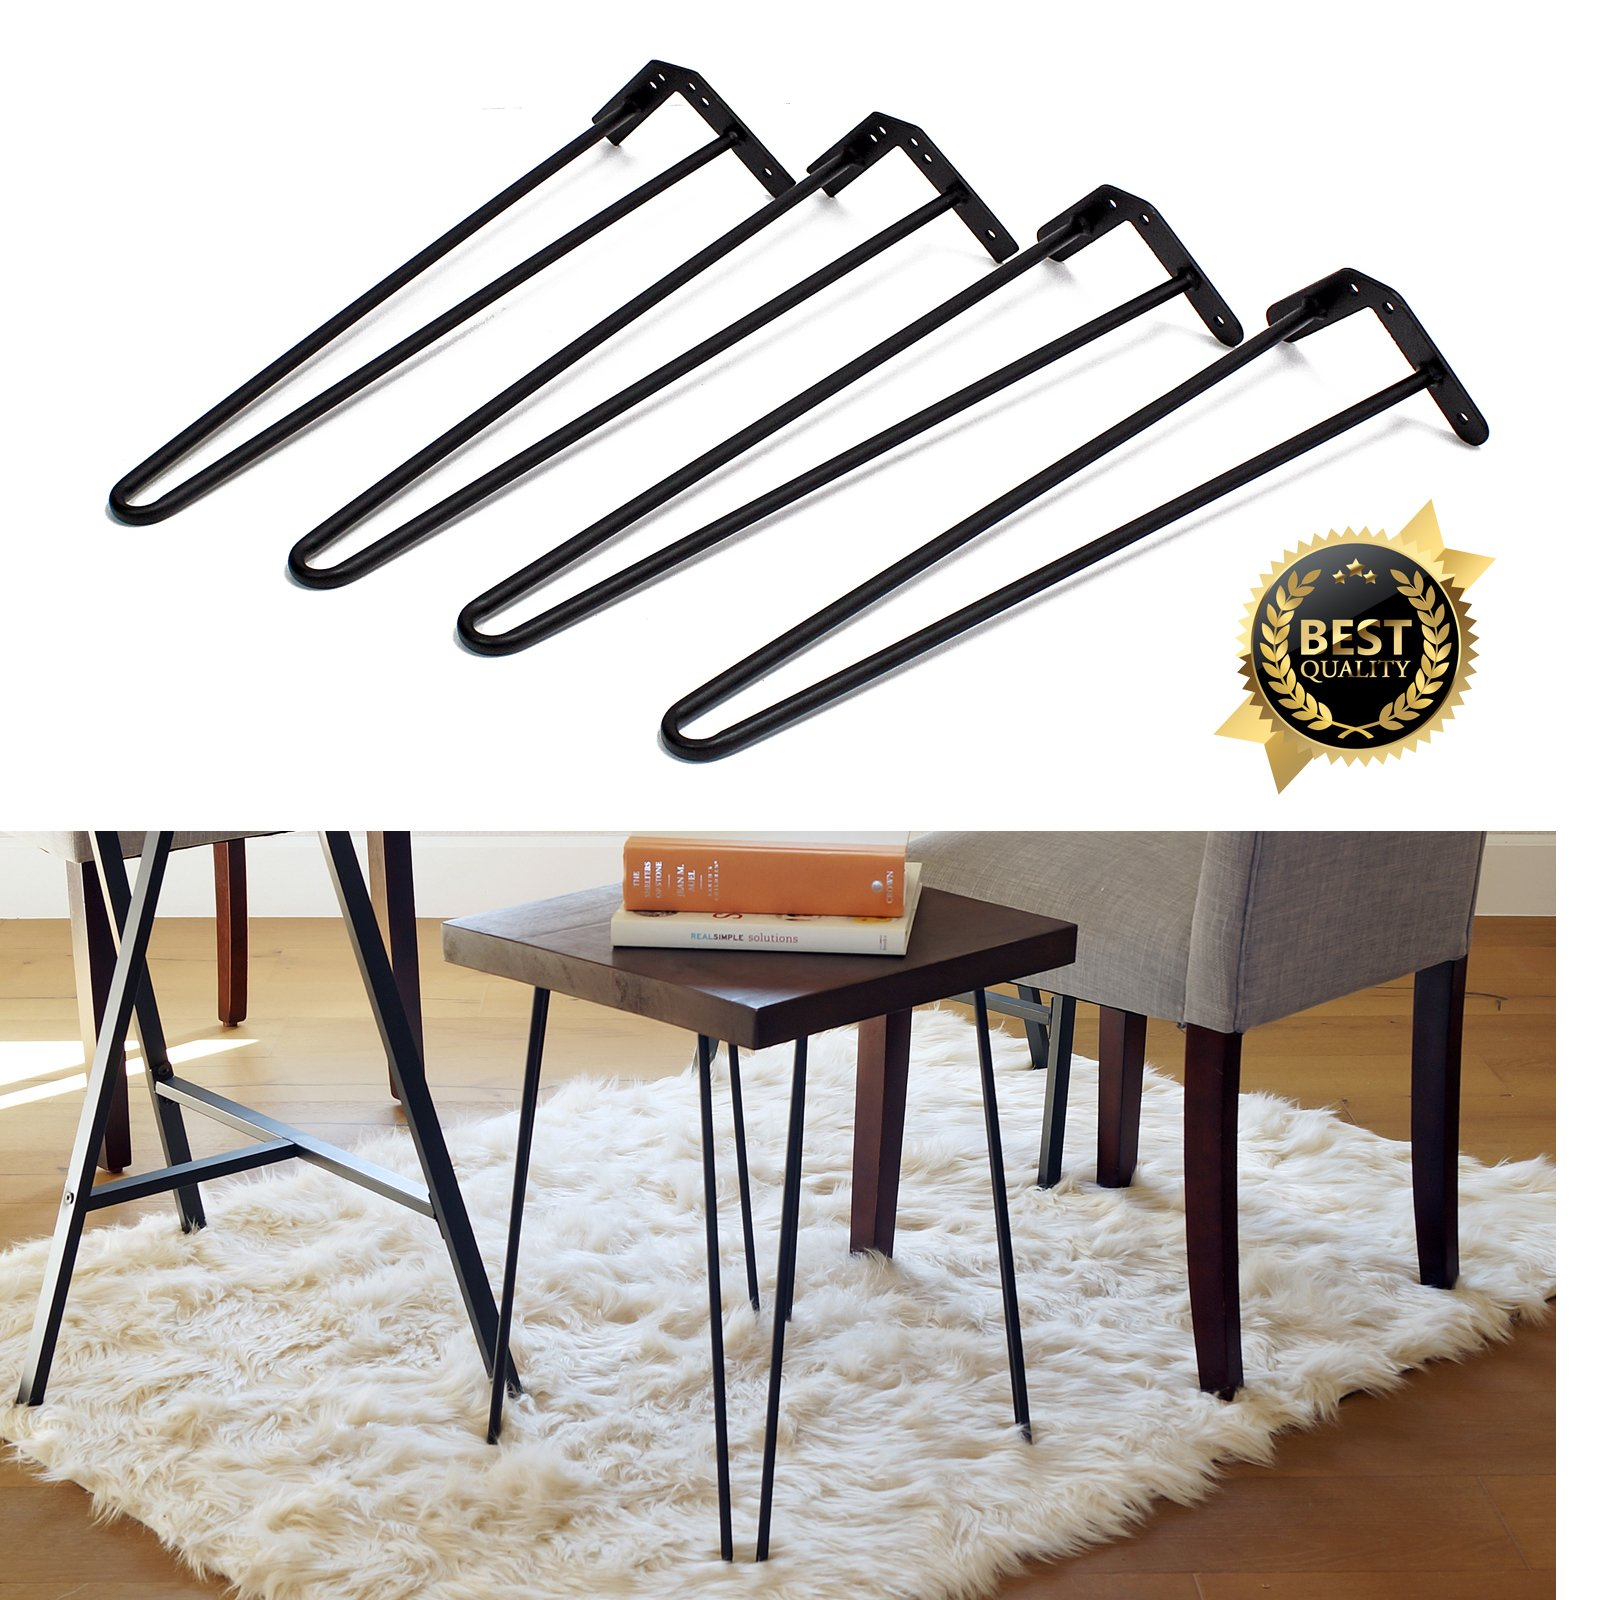 Set of 4 19'' Furniture Hairpin Metal Legs (19-inch) Heavy Duty Use for Wood Tabletop